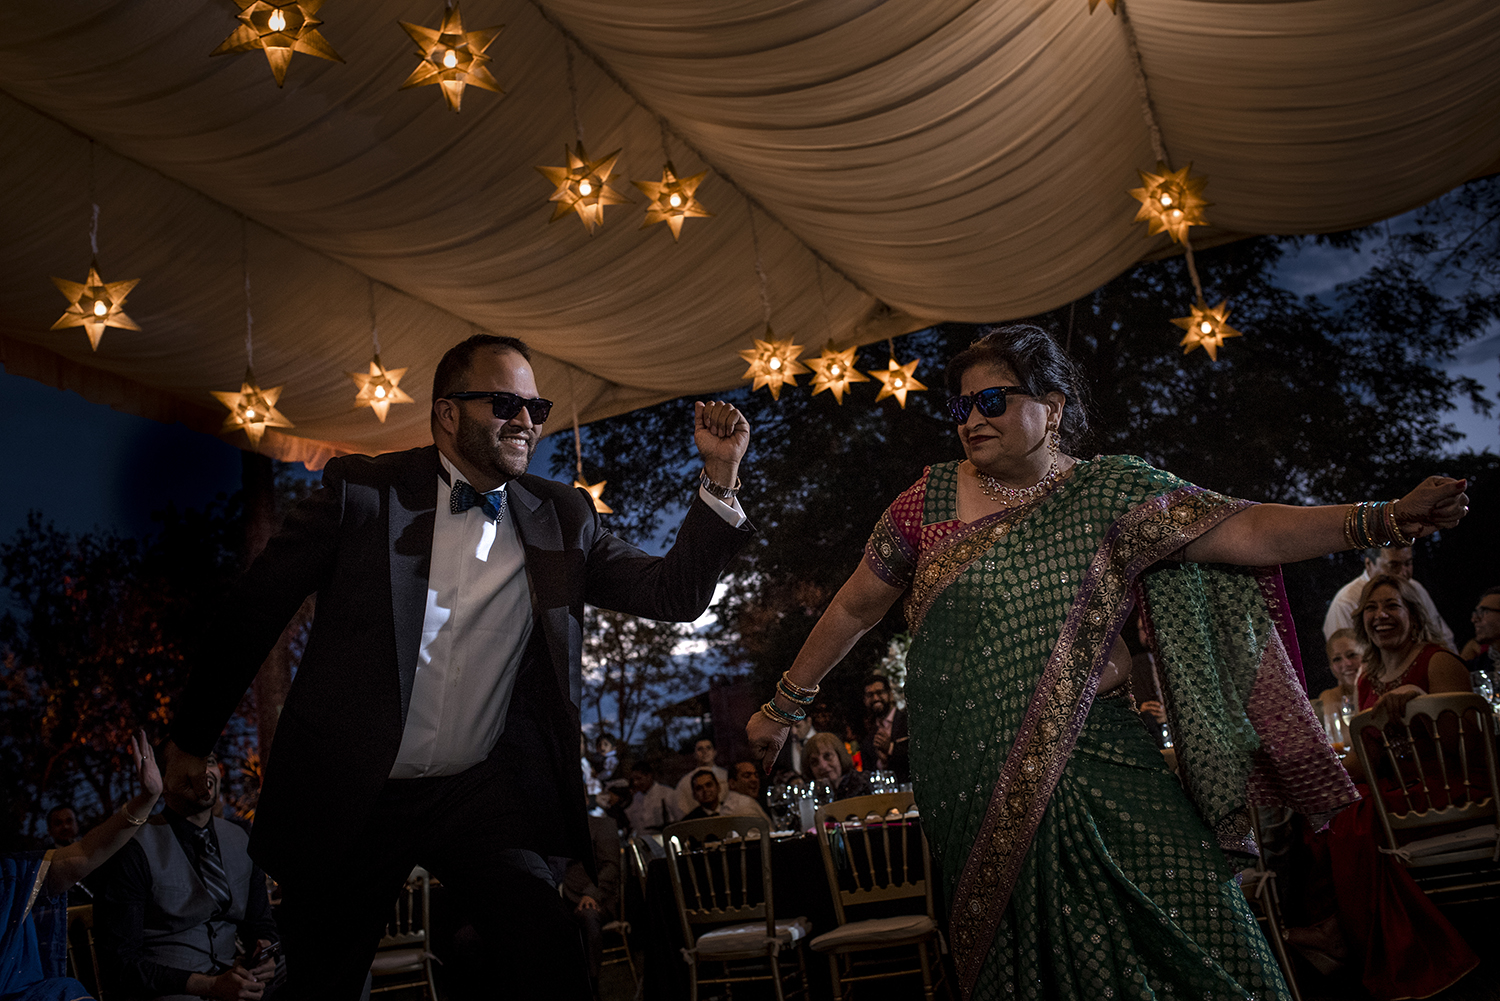 indian_wedding_san_miguel_de_allende_chio_garcia_photographer (48).jpg